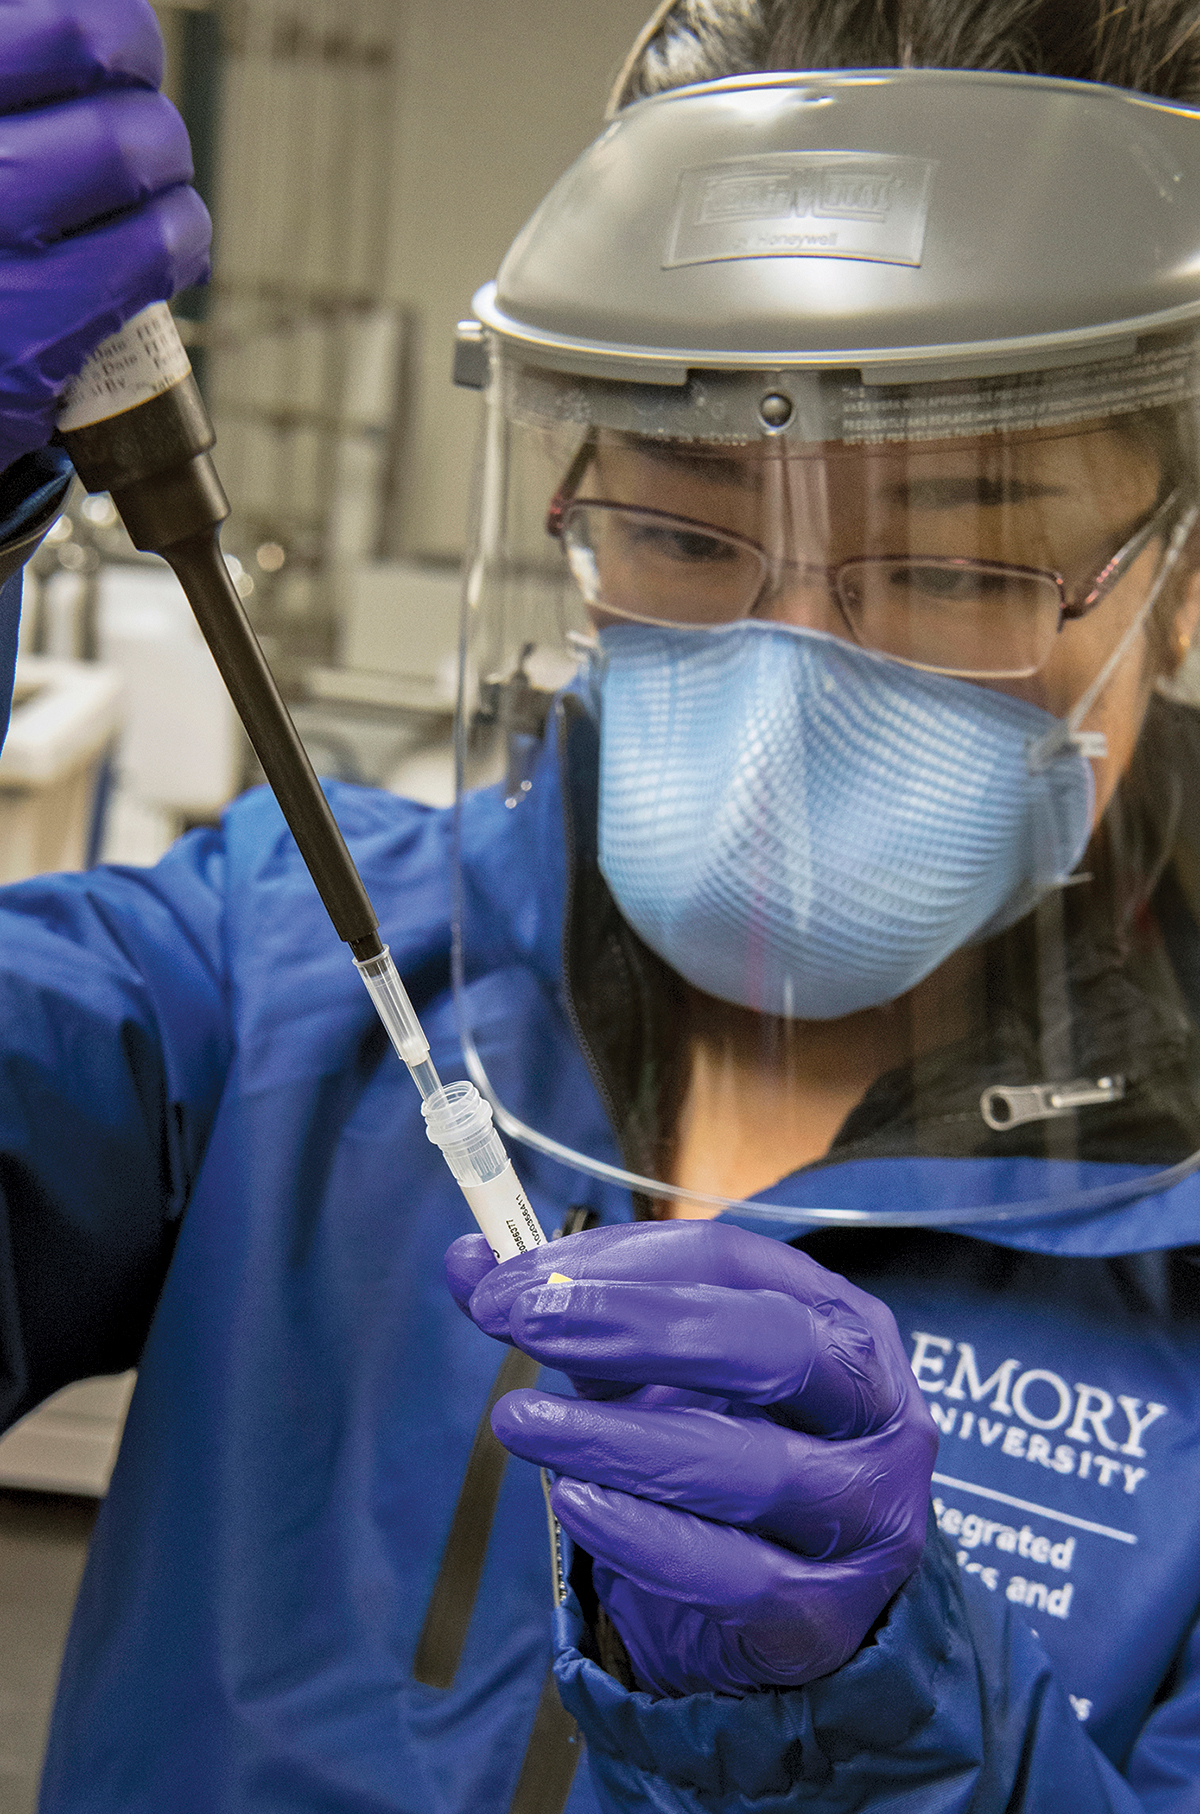 a researchers in gloves and a face shield works with a small test tube and a long instrument.